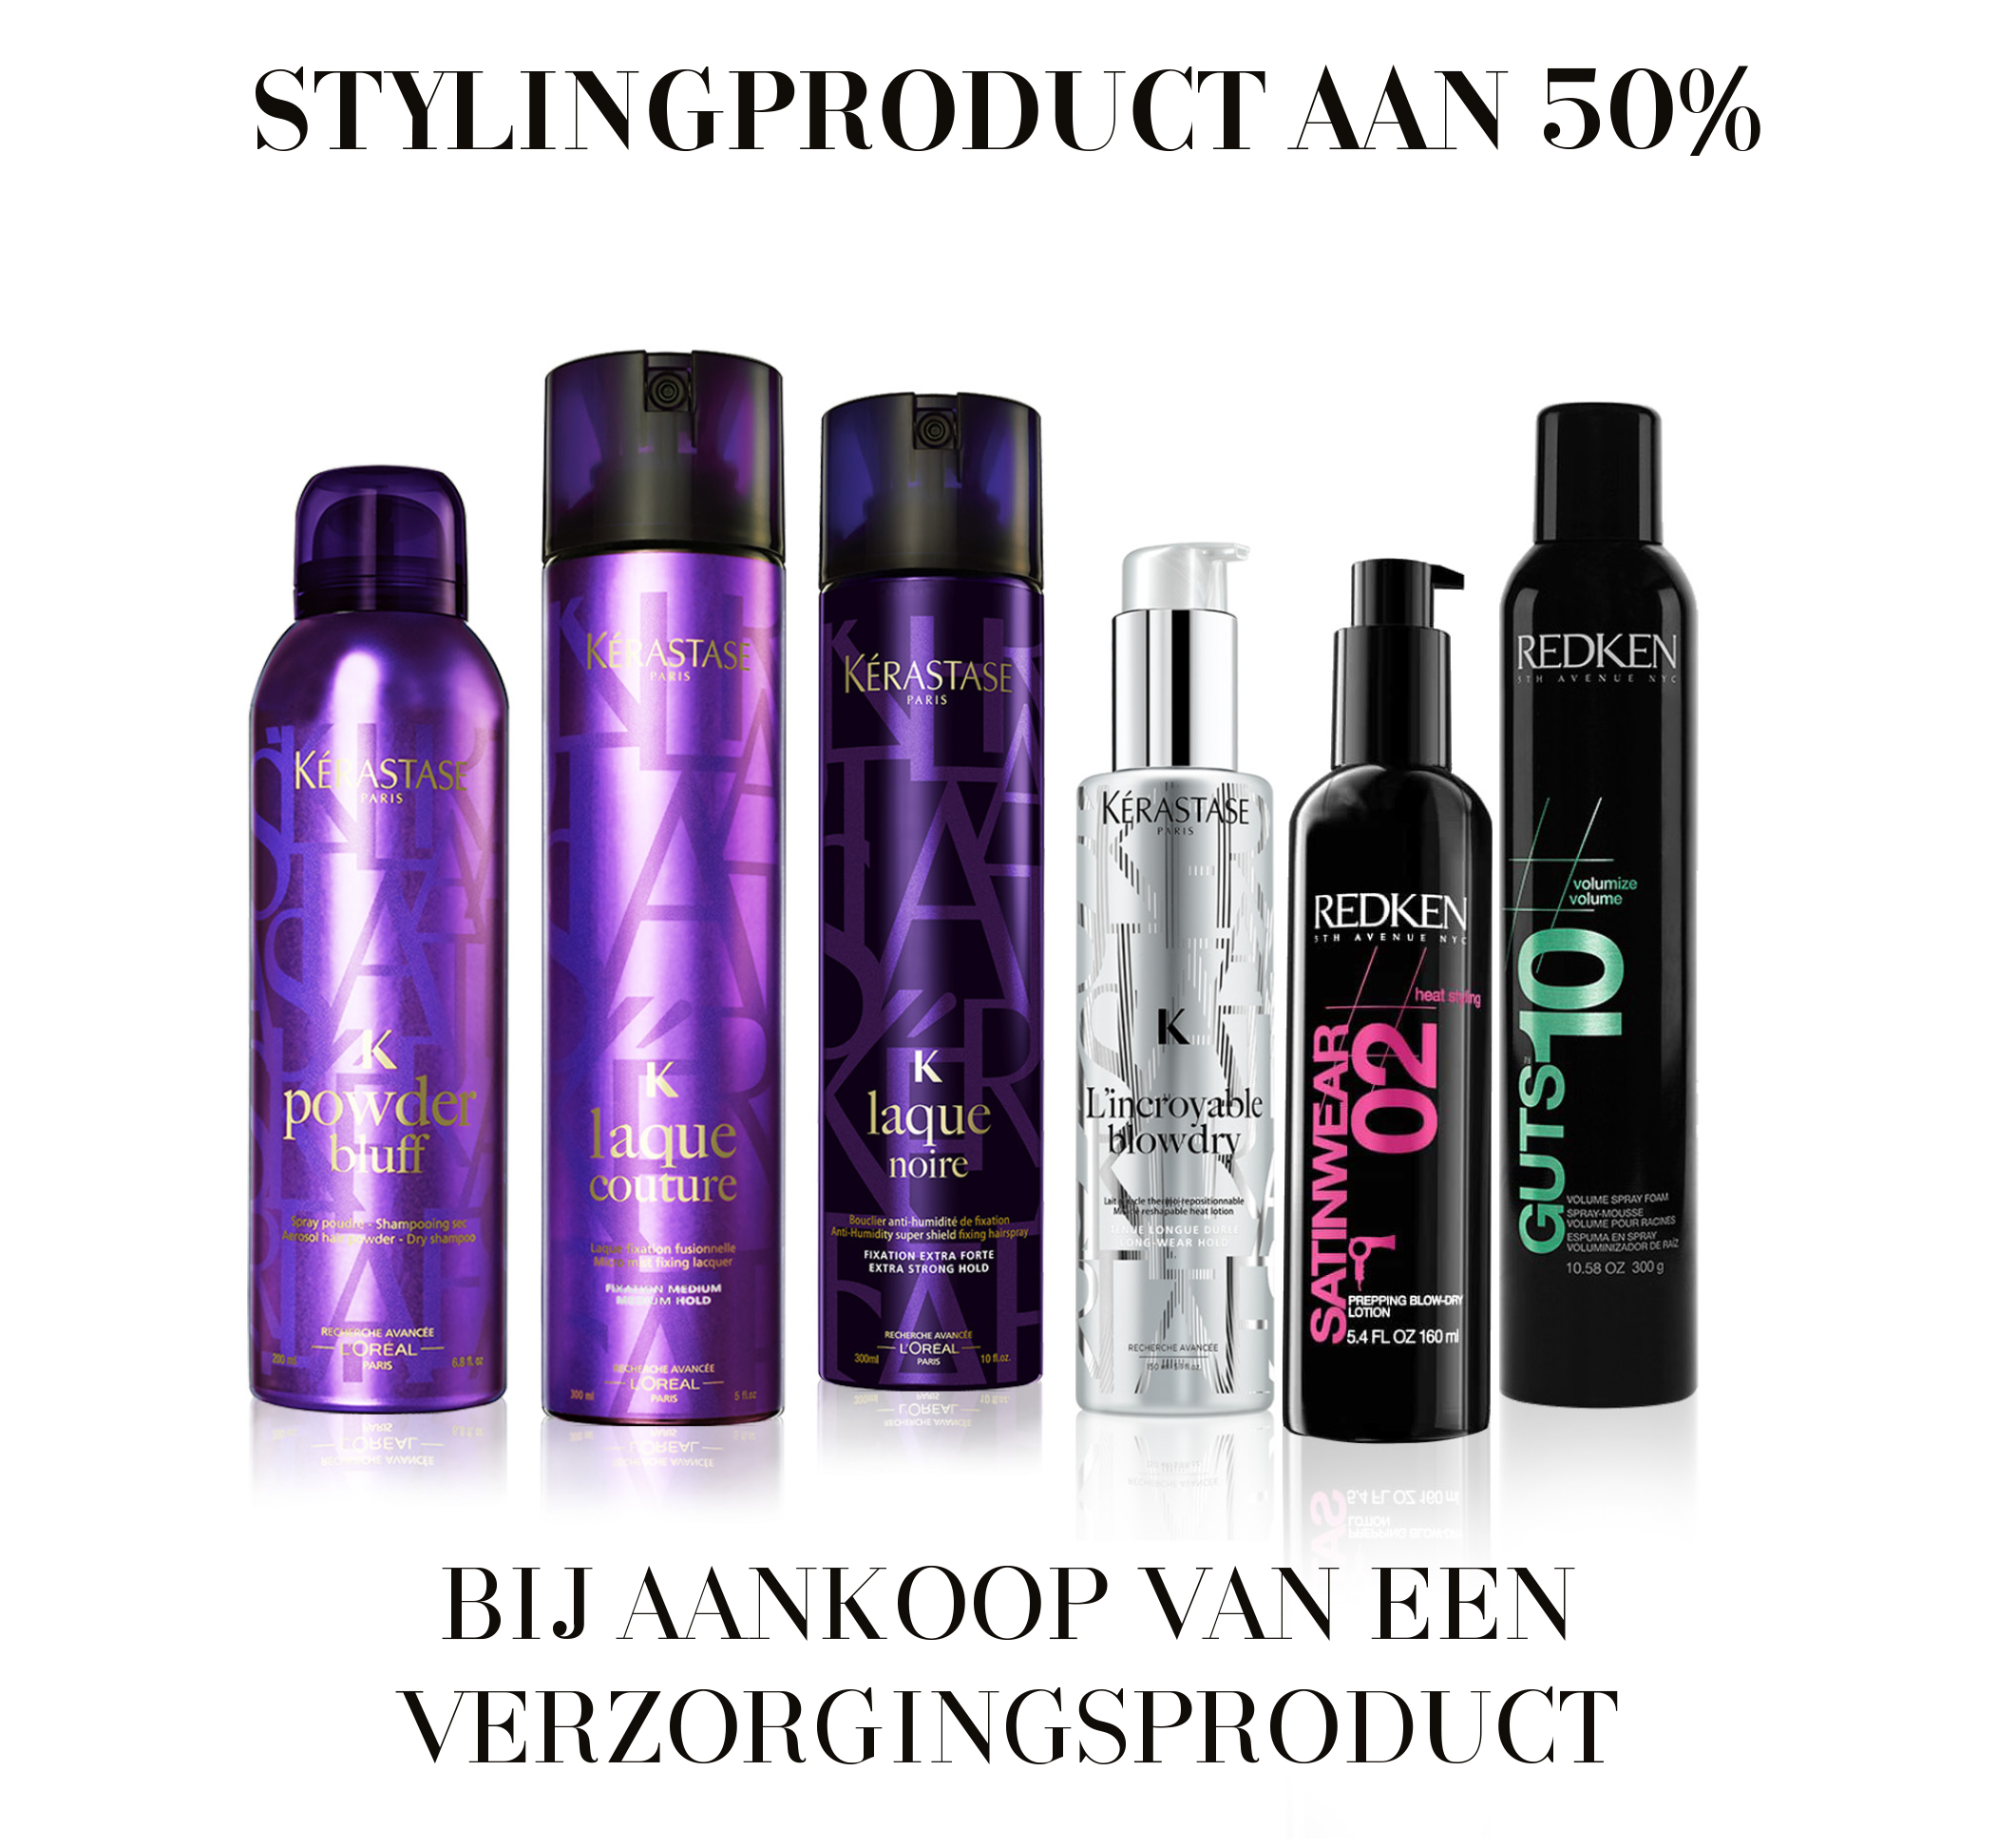 Stylingproduct aan 50%